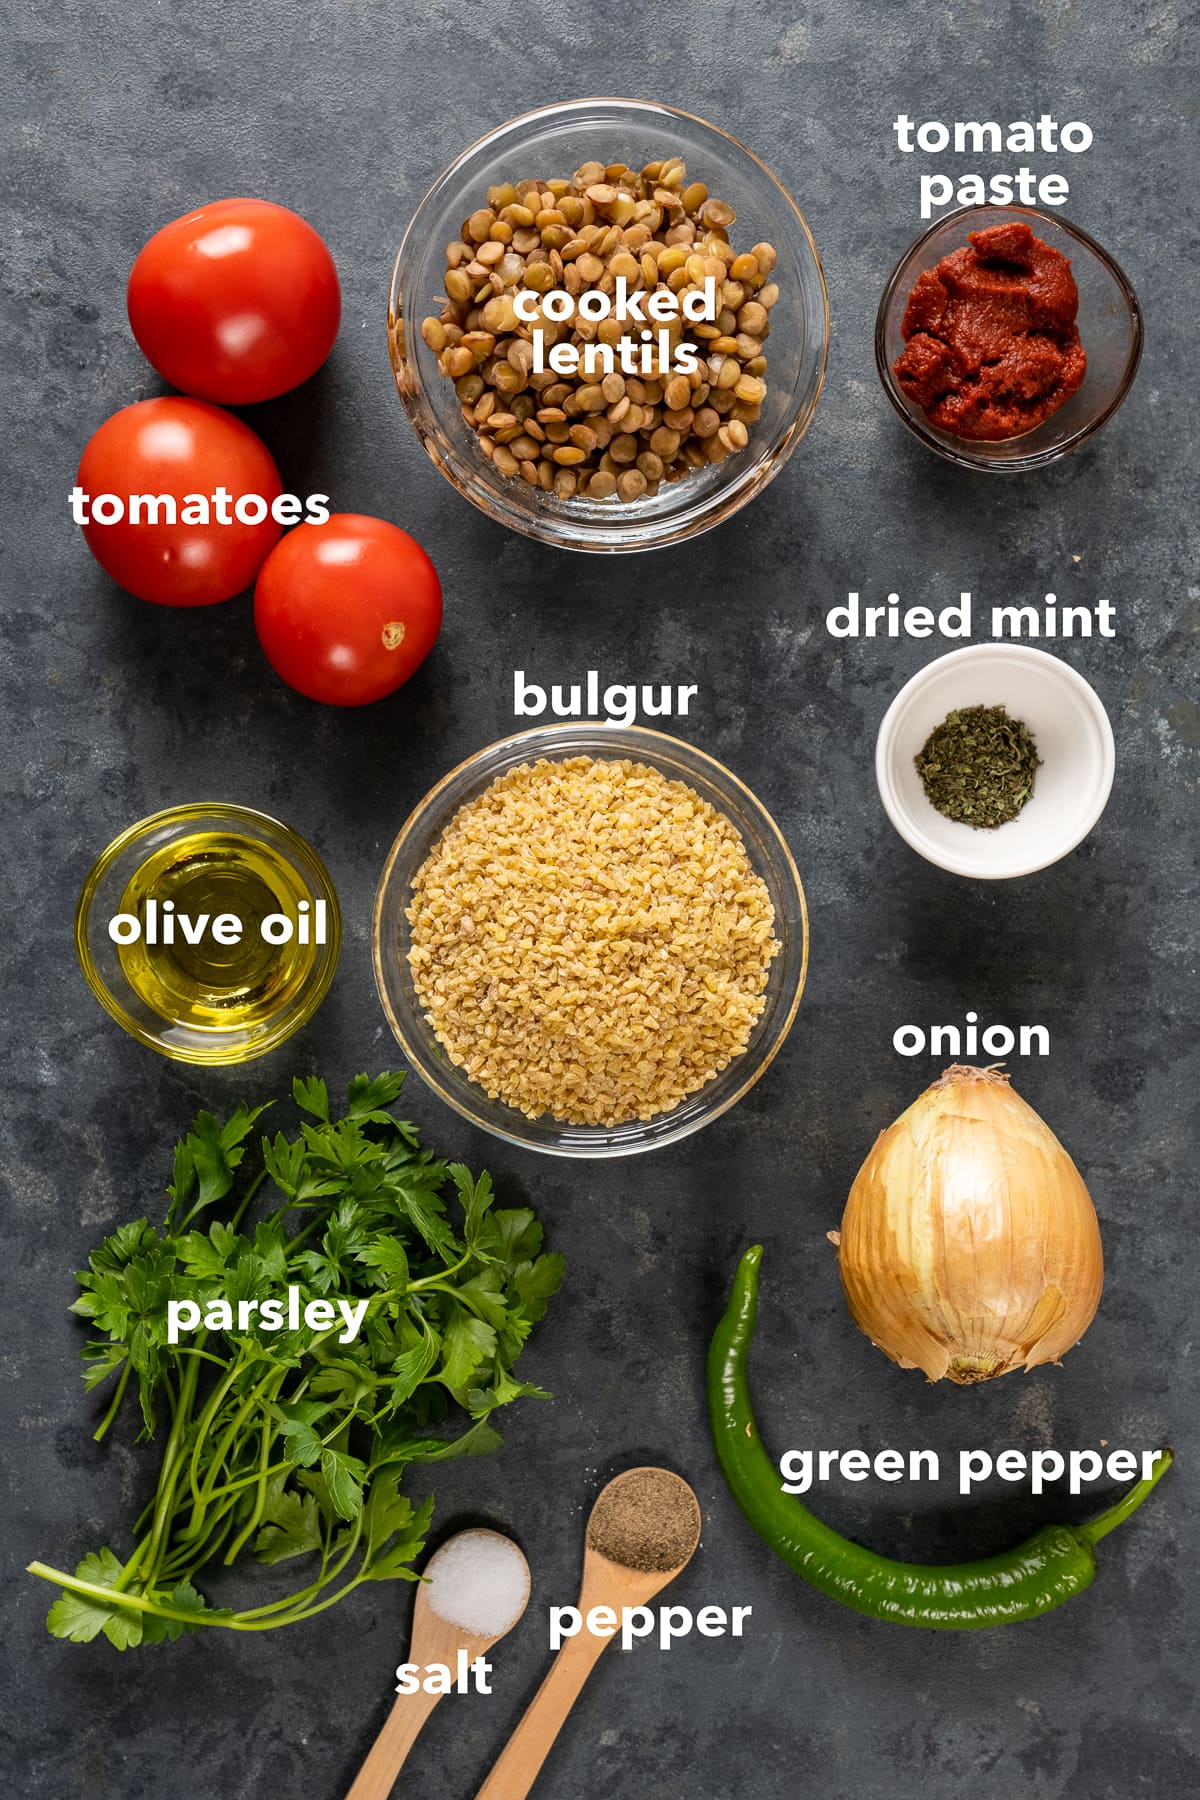 Bulgur in a glass bowl, cooked green lentils in a glass bowl, tomato paste, olive oil and dried mint in small bowls, salt and pepper in wooden spoons, onion, green pepper, parsley and tomatoes on a dark background.